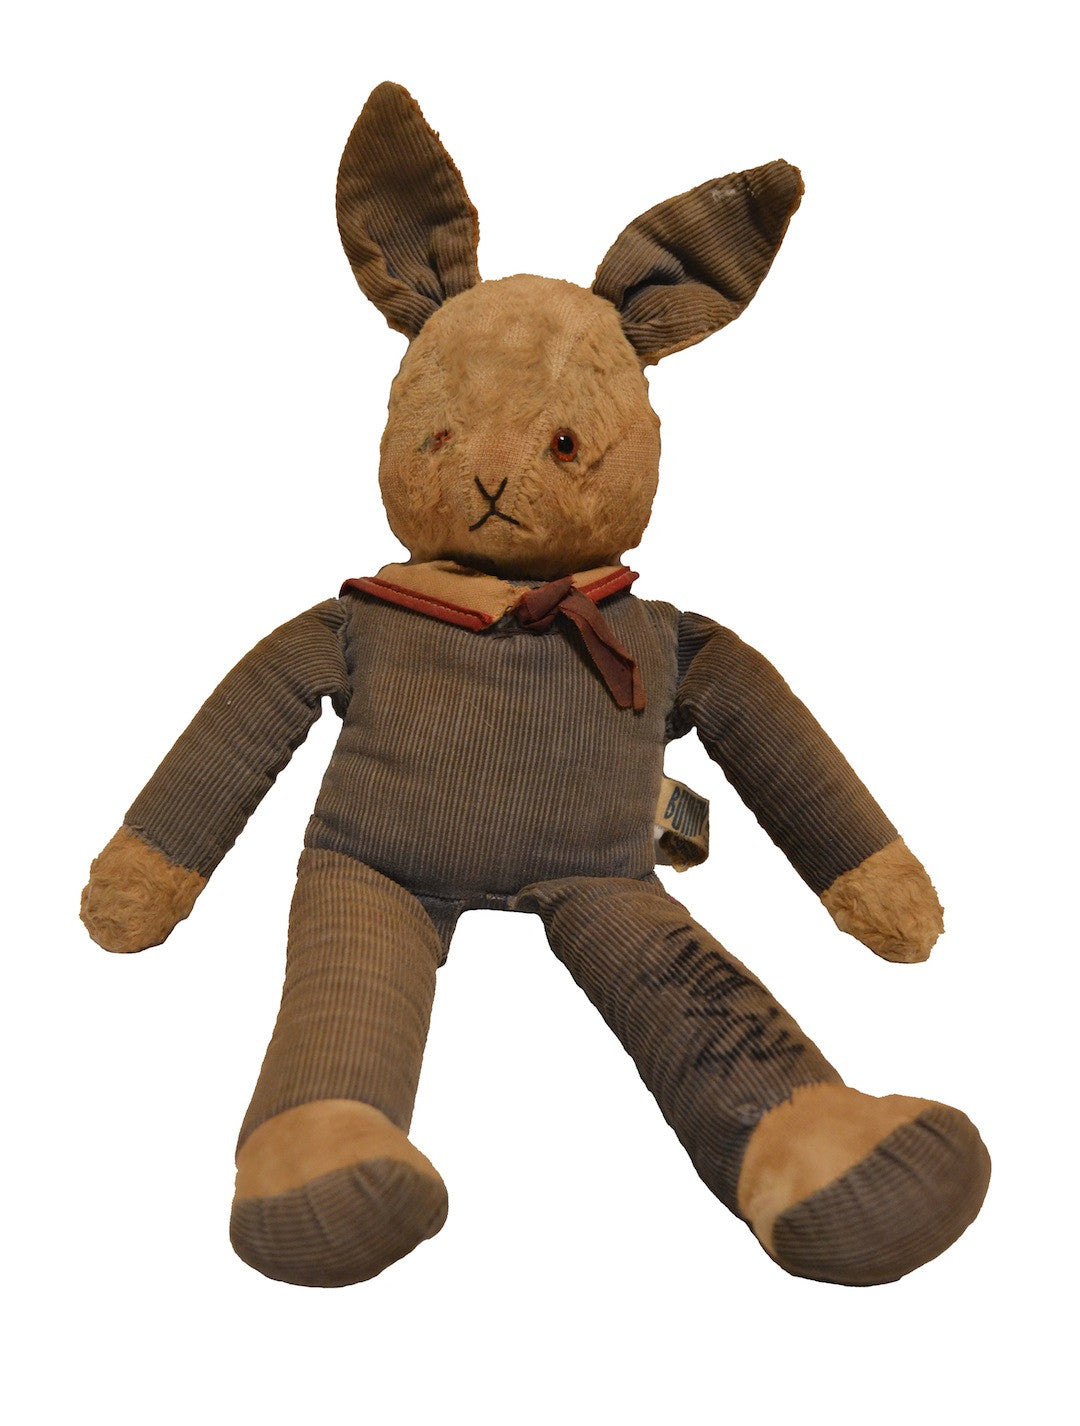 "A 17"" stuffed gray corduroy stuffed bunny from the personal collection of Carrie Fisher."